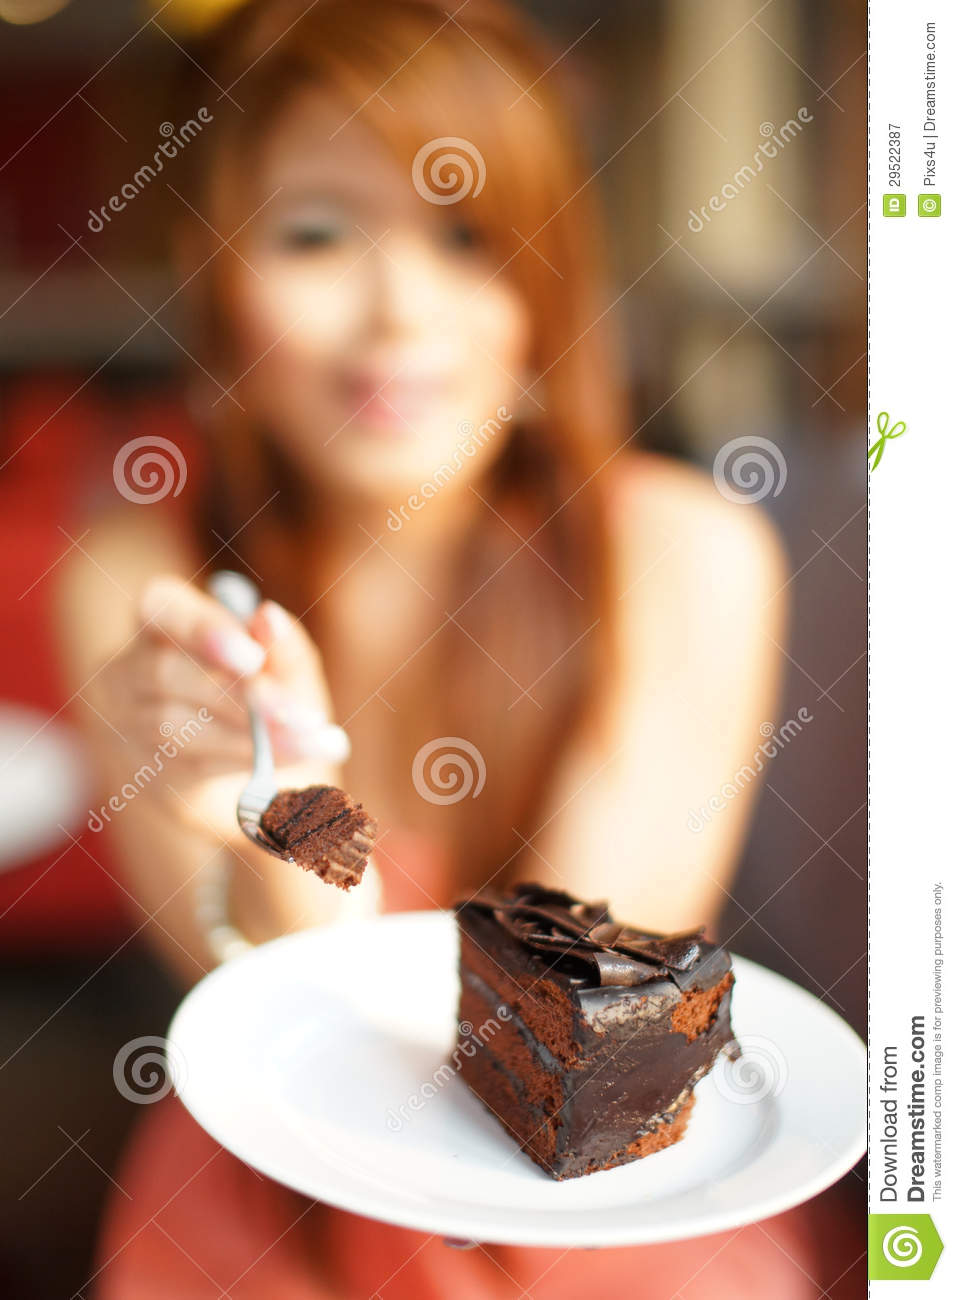 Eating Chocolate Cake Images : Young Beautiful Woman Sitting In Cafe Eating Chocolate ...